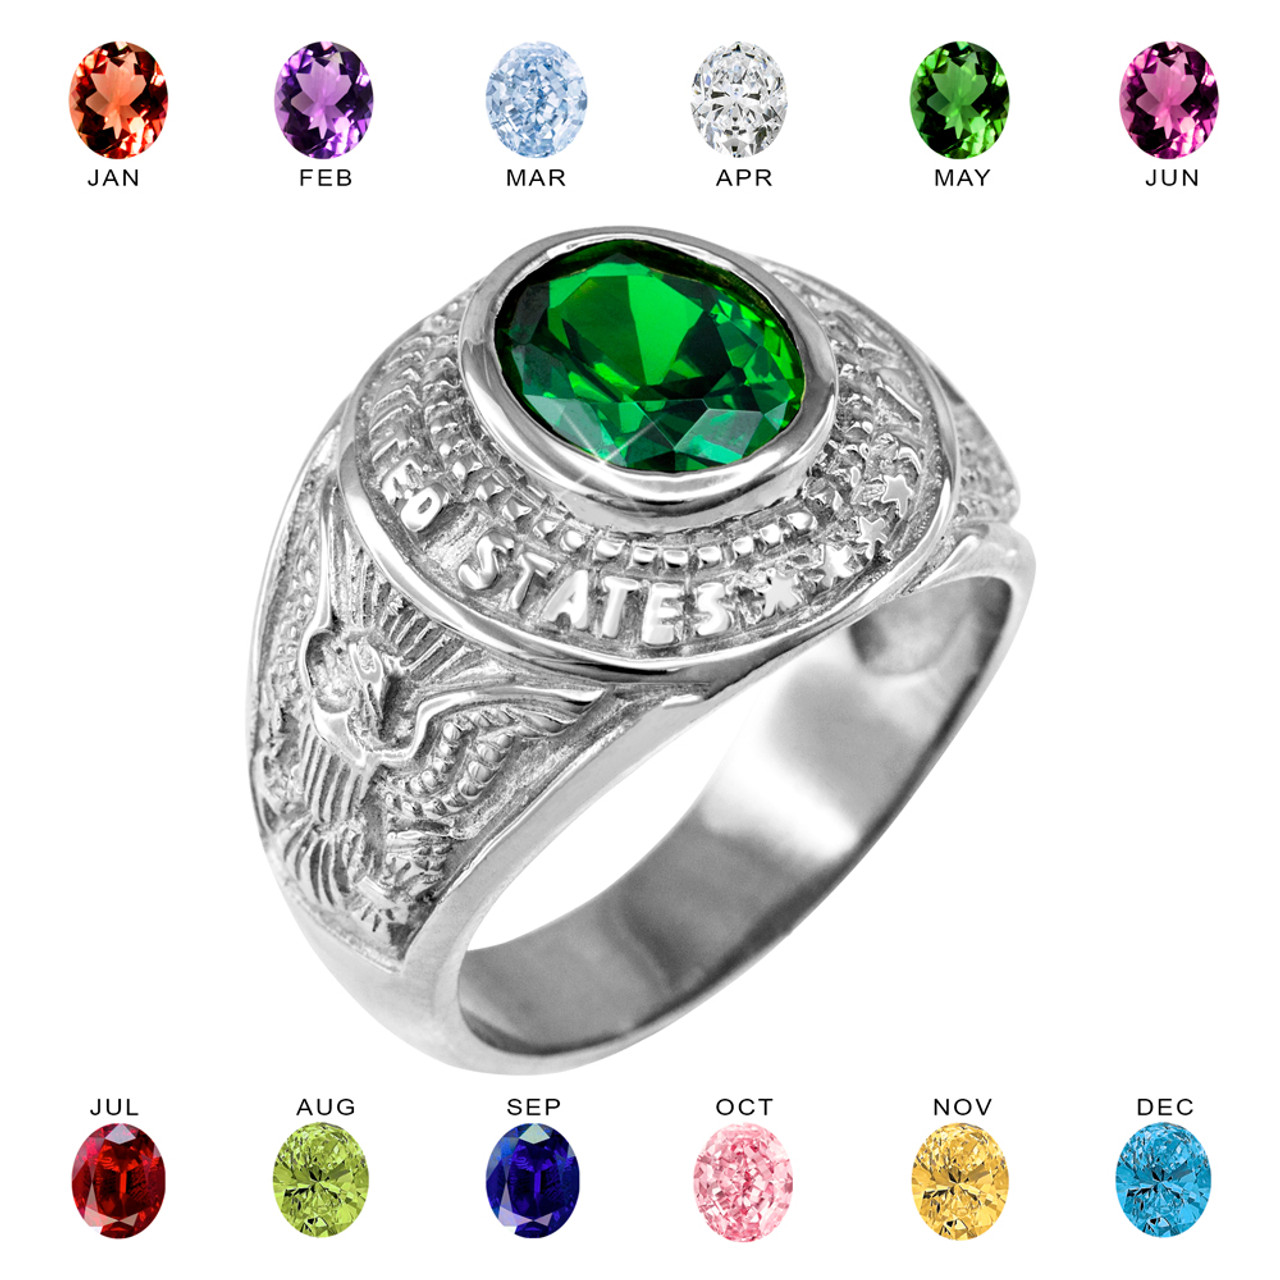 gemstone solid for green from women item may gifts silver leige in ring rings wedding jewelry cut sterling birthstone emerald